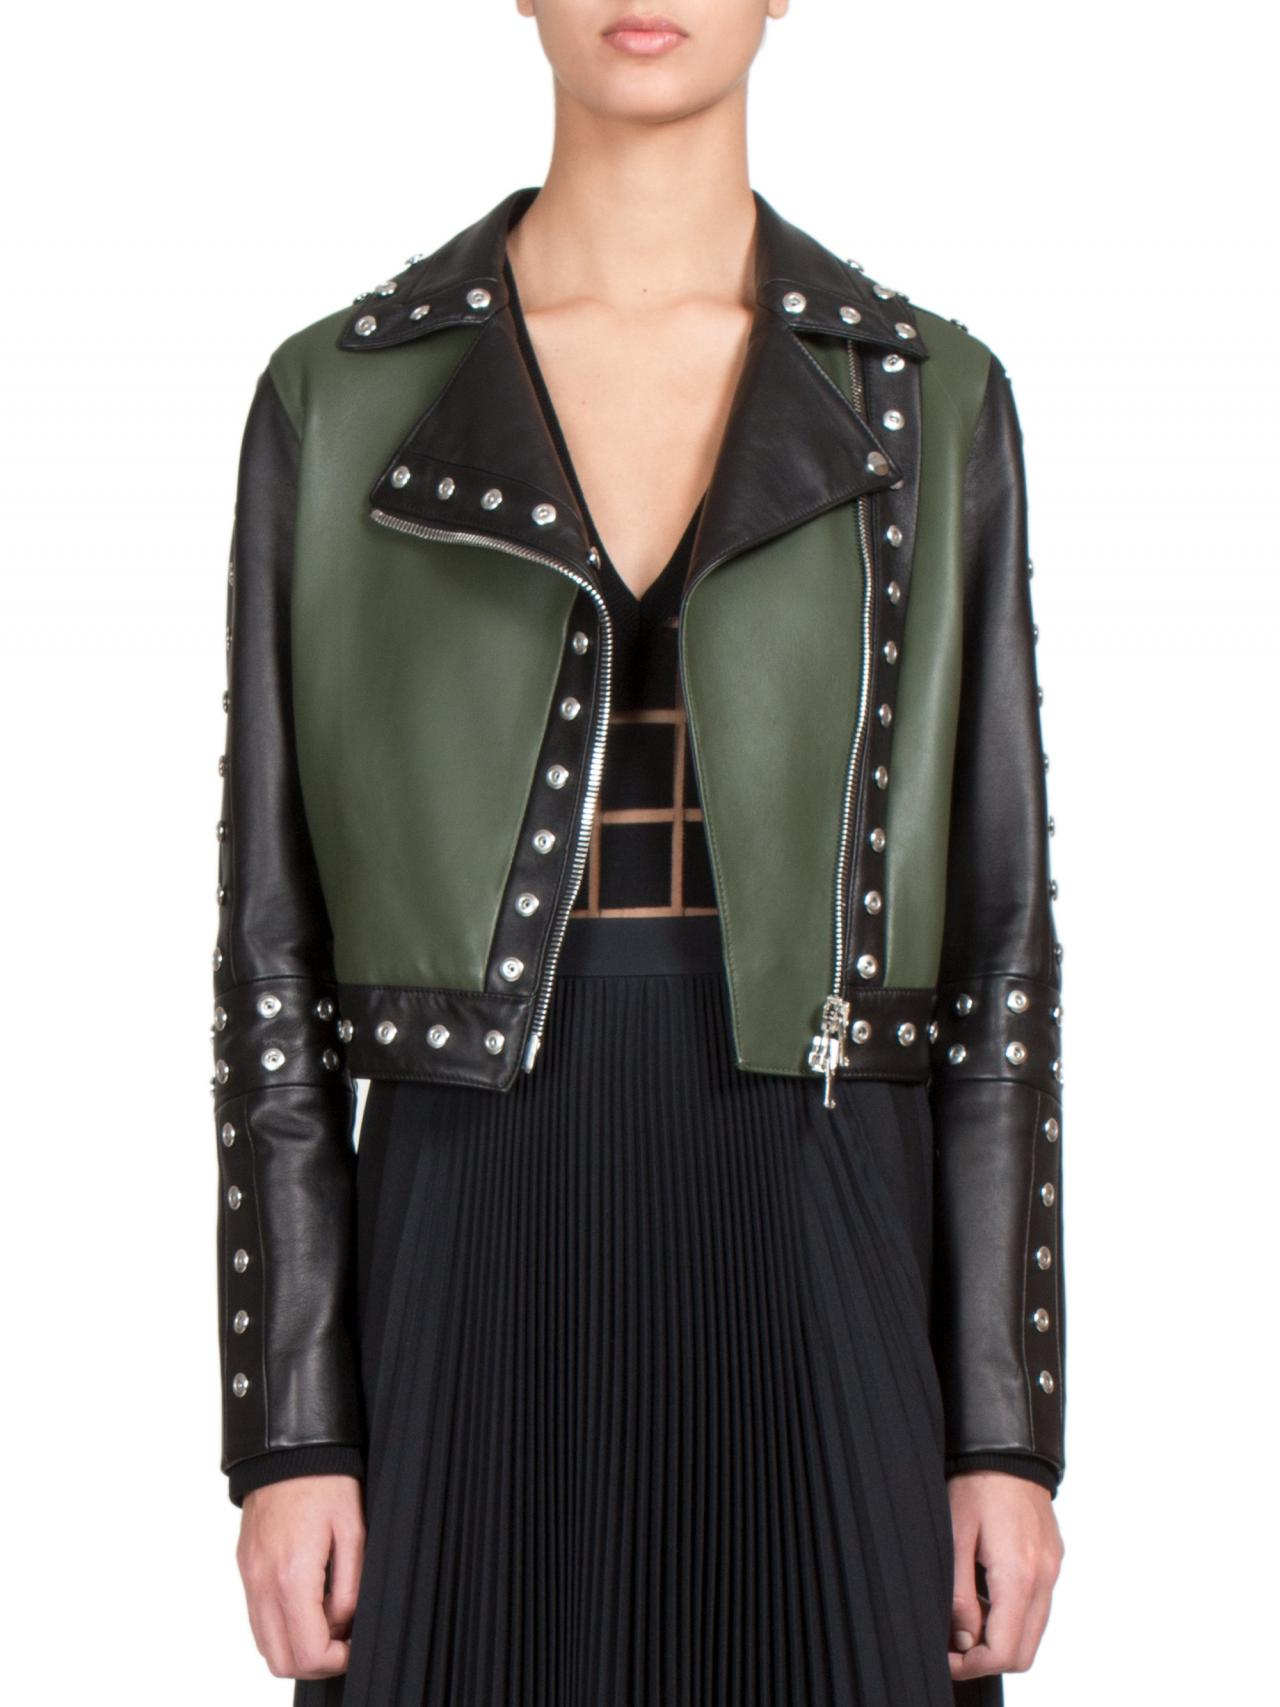 Two Tone Black & Green Short Body Genuine Leather Jacket Silver Studs For Women